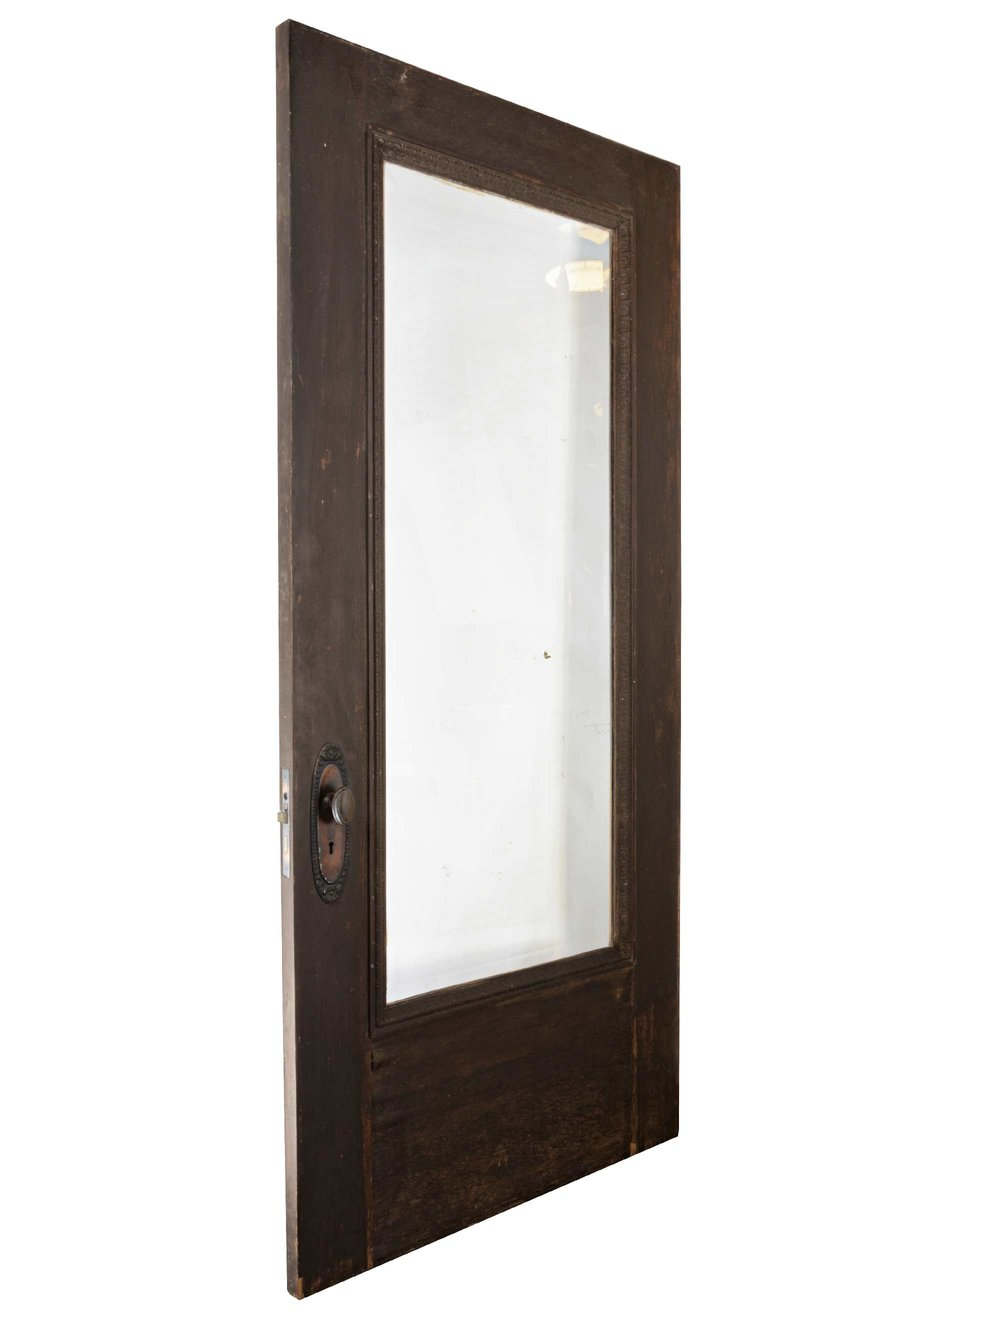 46824-full-view-door-with-beveled-glass-and-hardware-angle.jpg